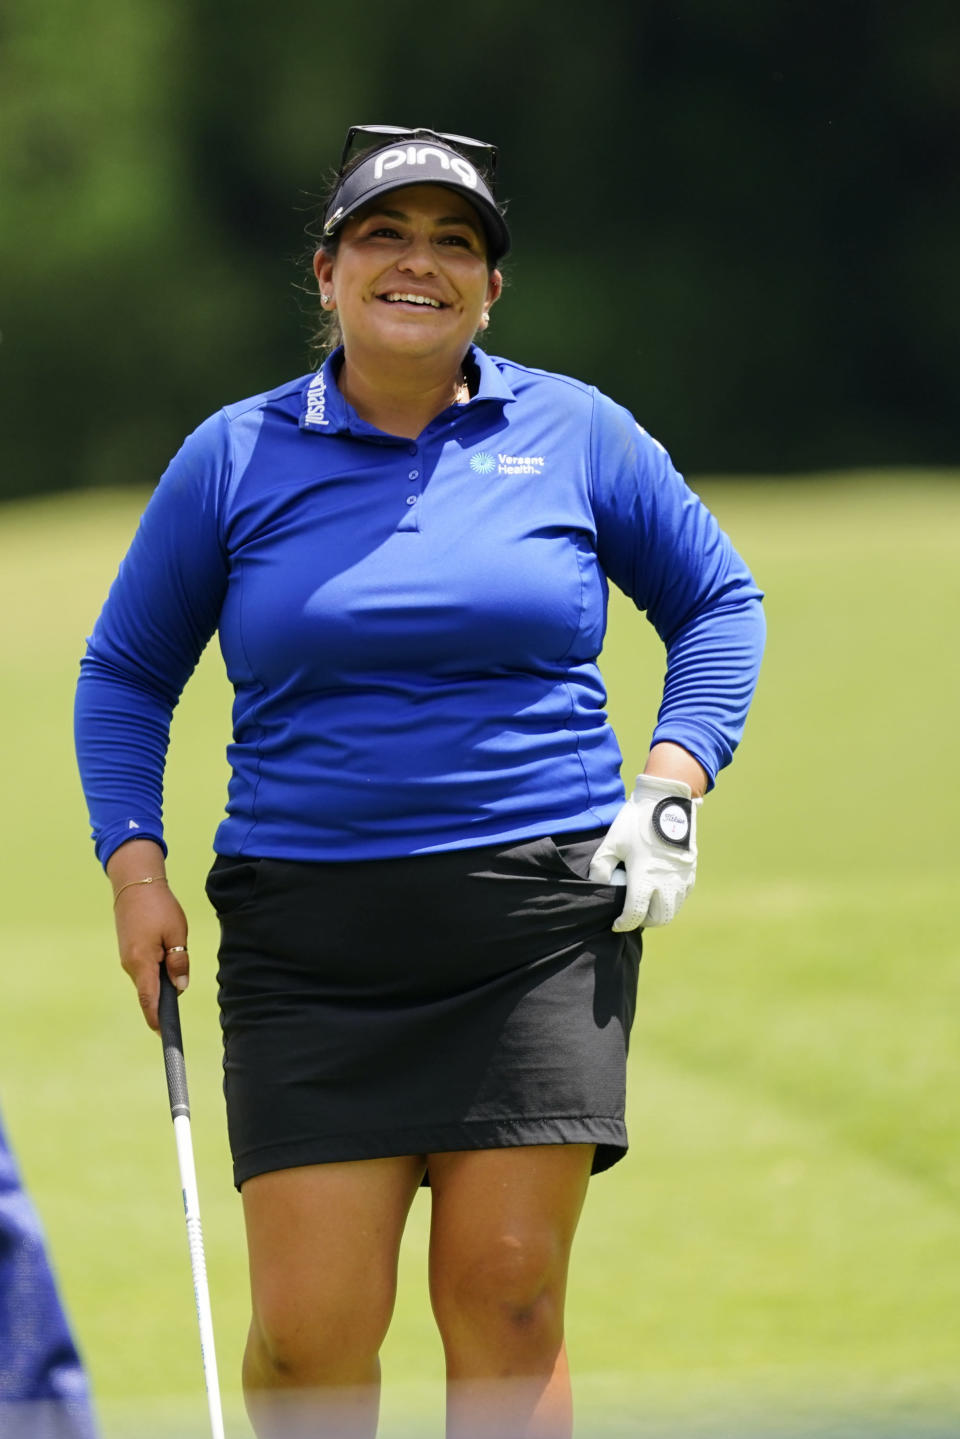 Lizette Salas of the U.S. prepares to tee off on the sixth hole during the third round of play in the KPMG Women's PGA Championship golf tournament Saturday, June 26, 2021, in Johns Creek, Ga. (AP Photo/John Bazemore)